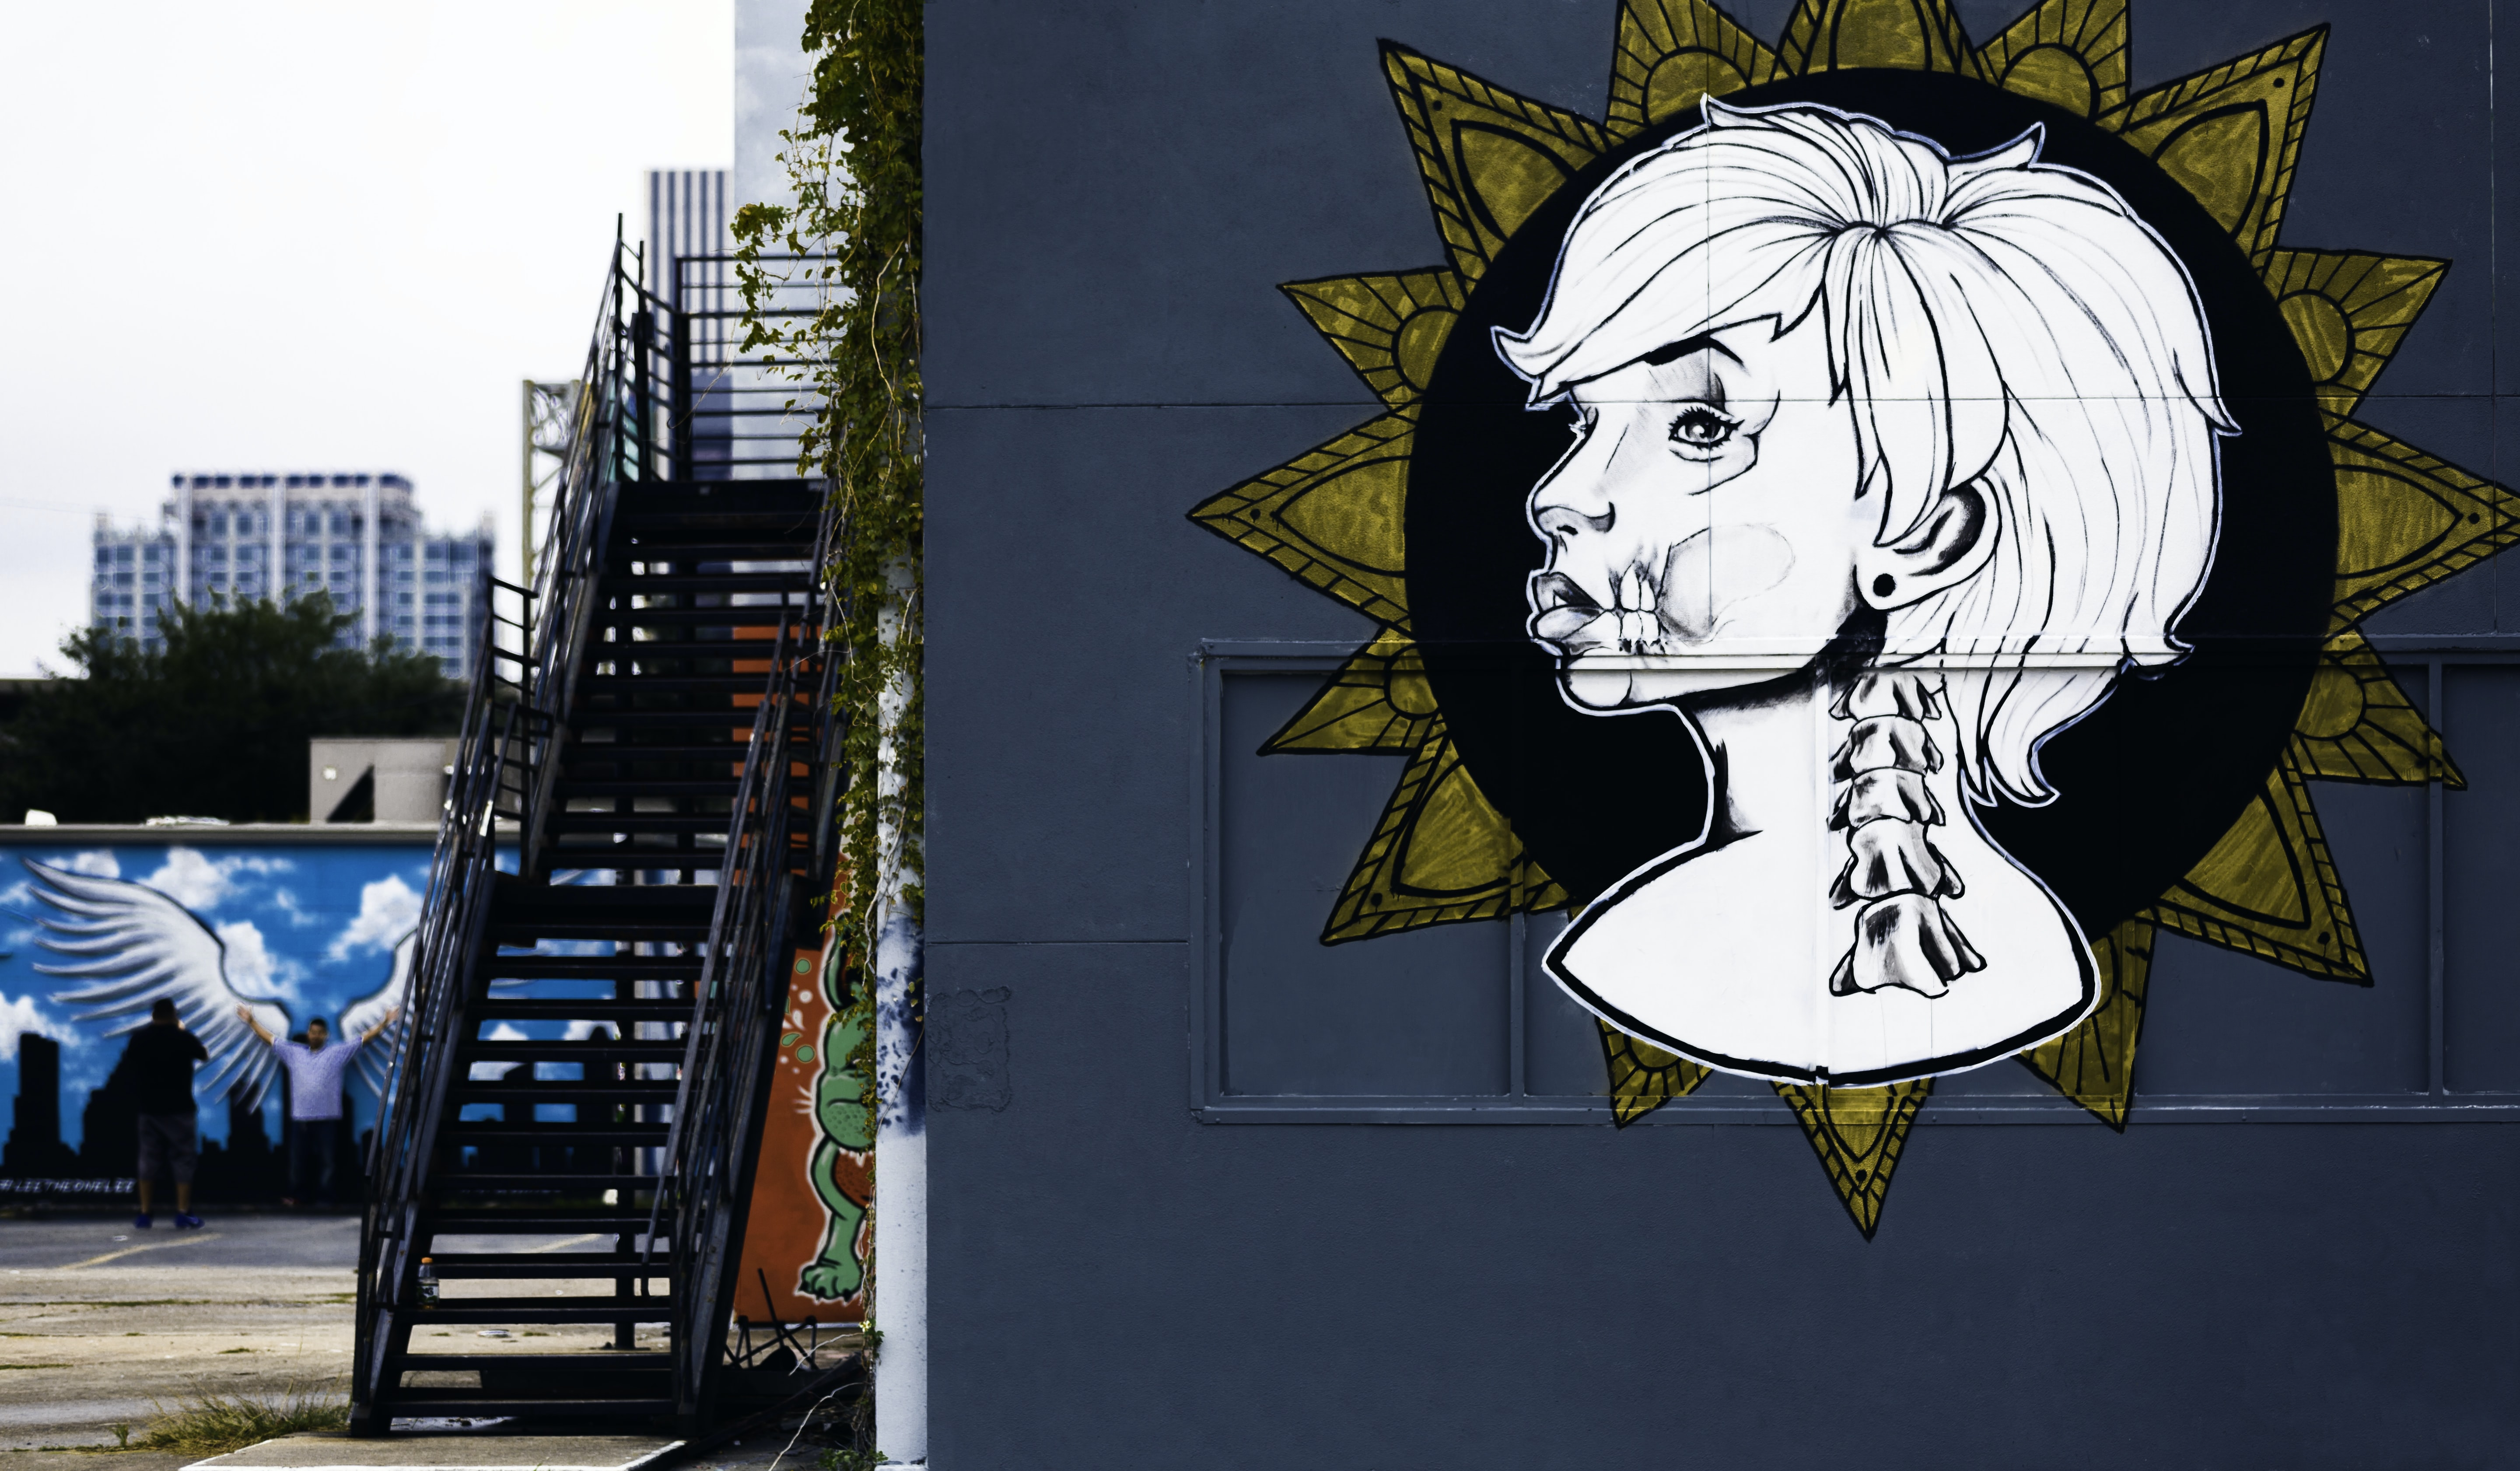 Urban stairwell and white graffiti of woman's face and head on urban building in Houston